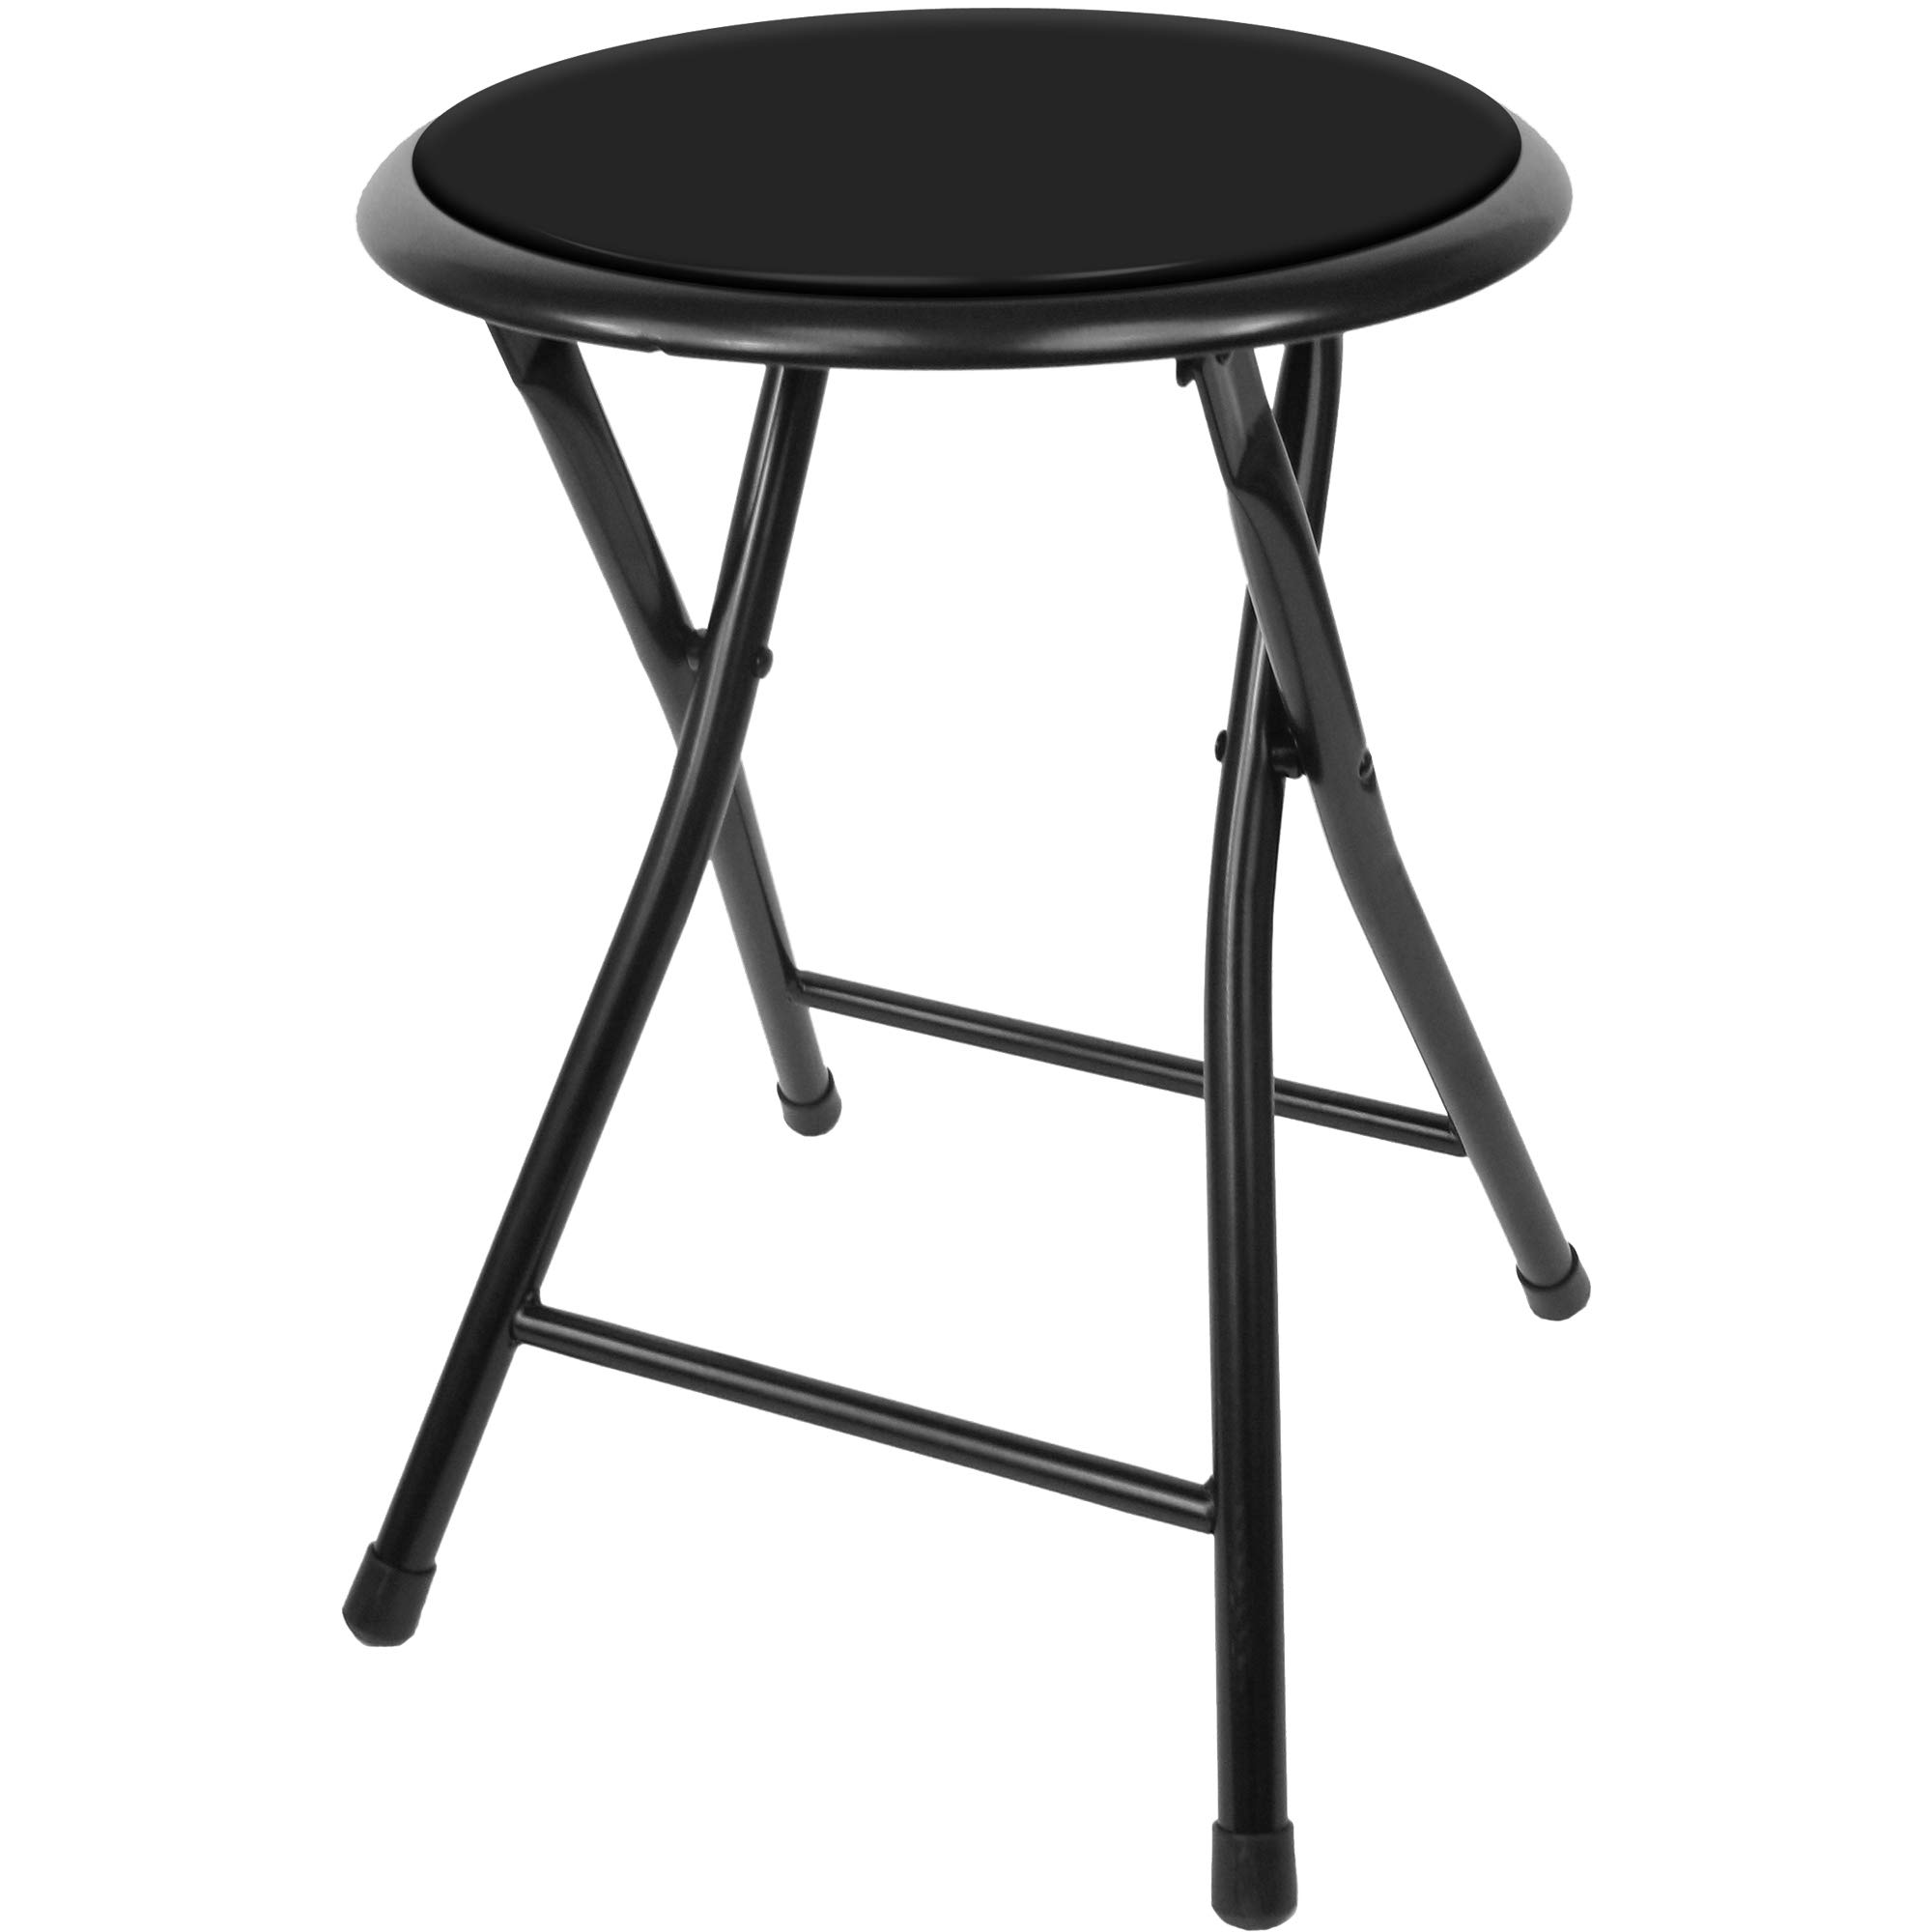 Trademark Home Collection A022272 18 Inch Cushioned Folding Stool, Black by Trademark Home Collection